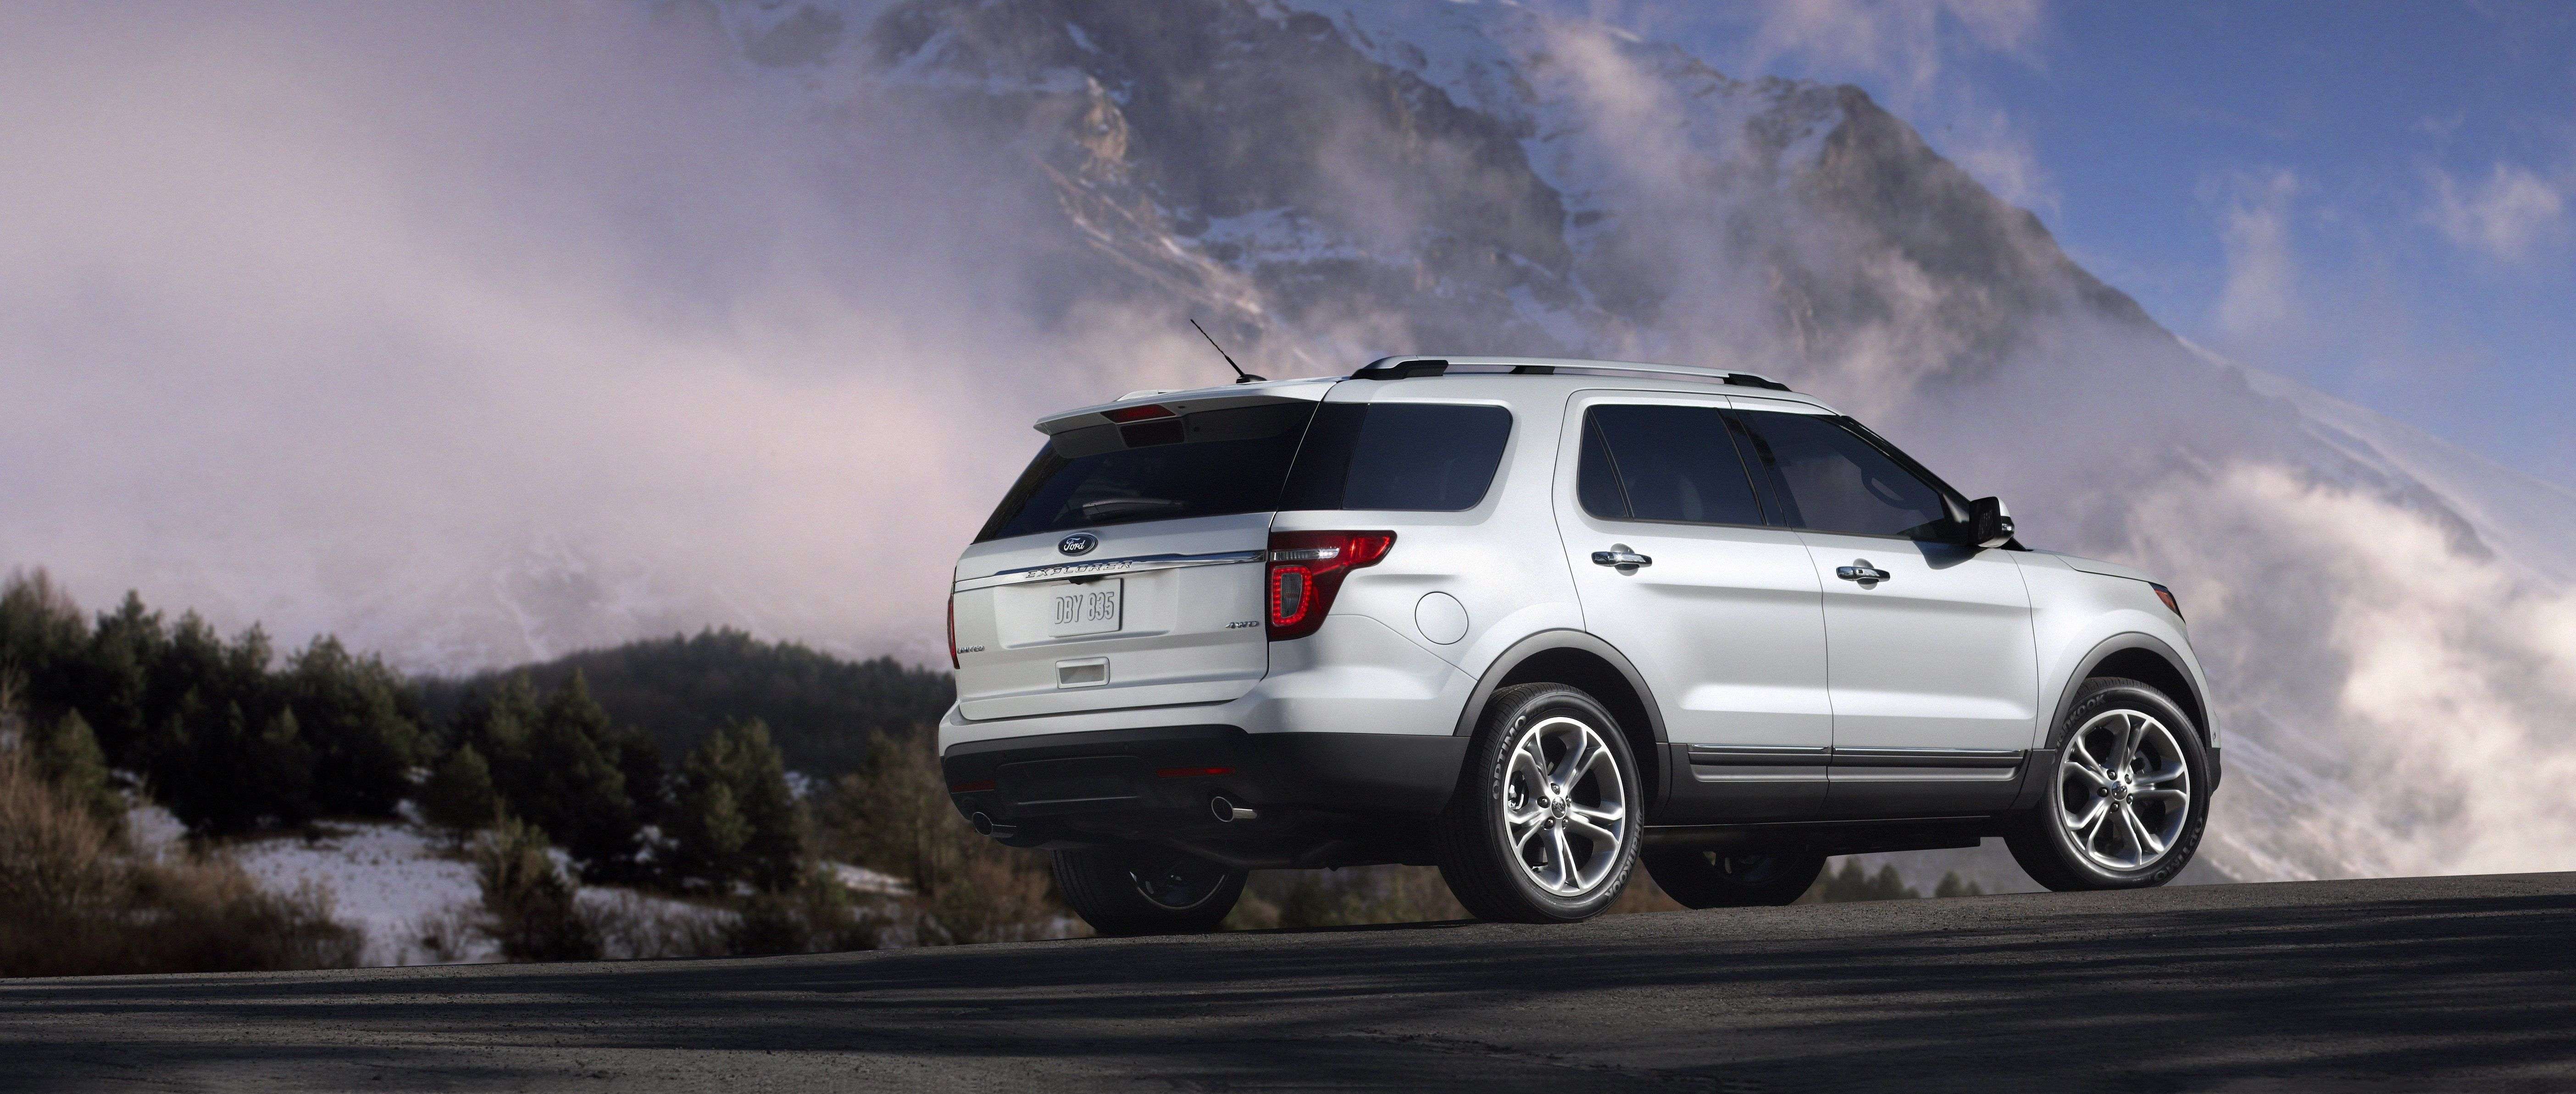 Ford Explorer With Images 2011 Ford Explorer Ford Explorer